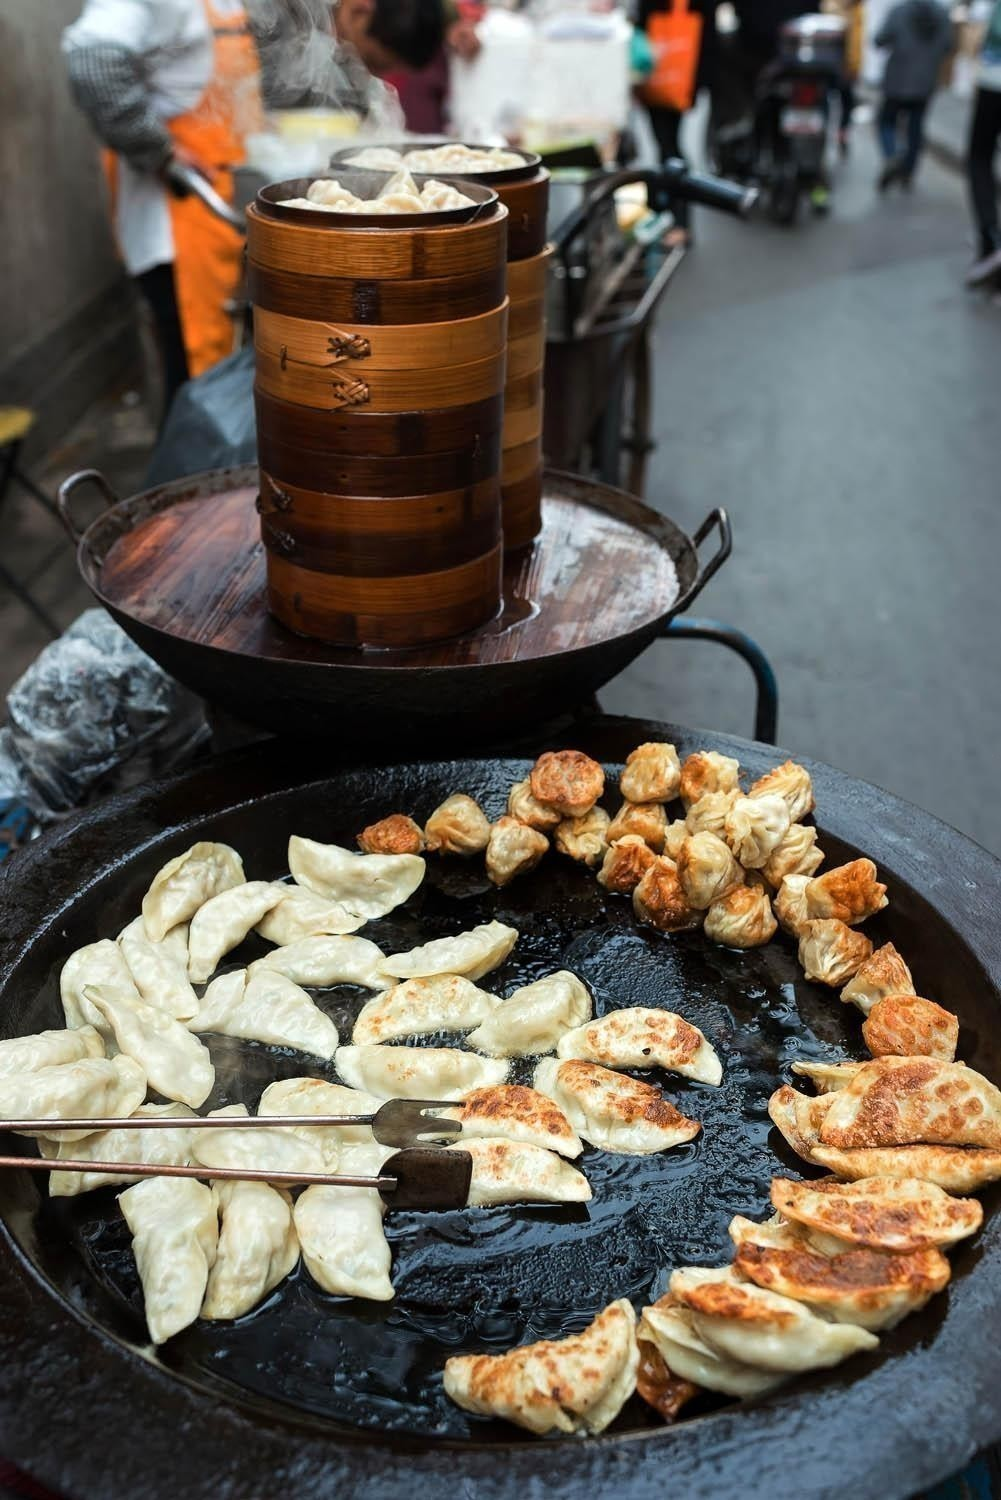 Traditional chinese street food cuisine in Shanghai | China Travel Guide